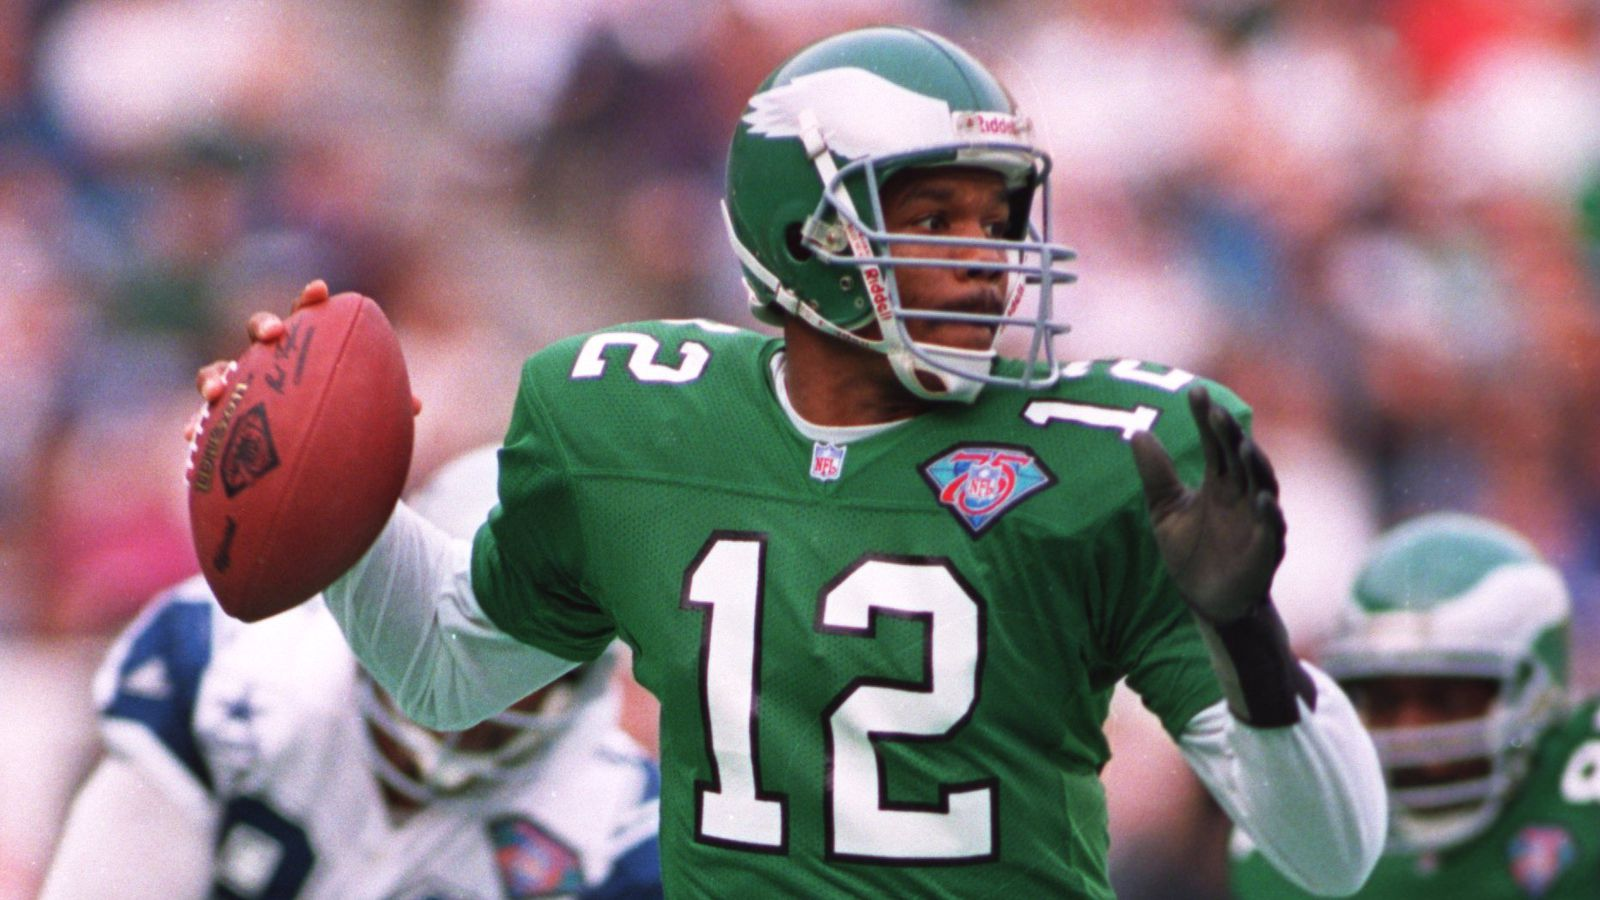 Randall Cunningham's Eagles jersey is the most popular throwback ...